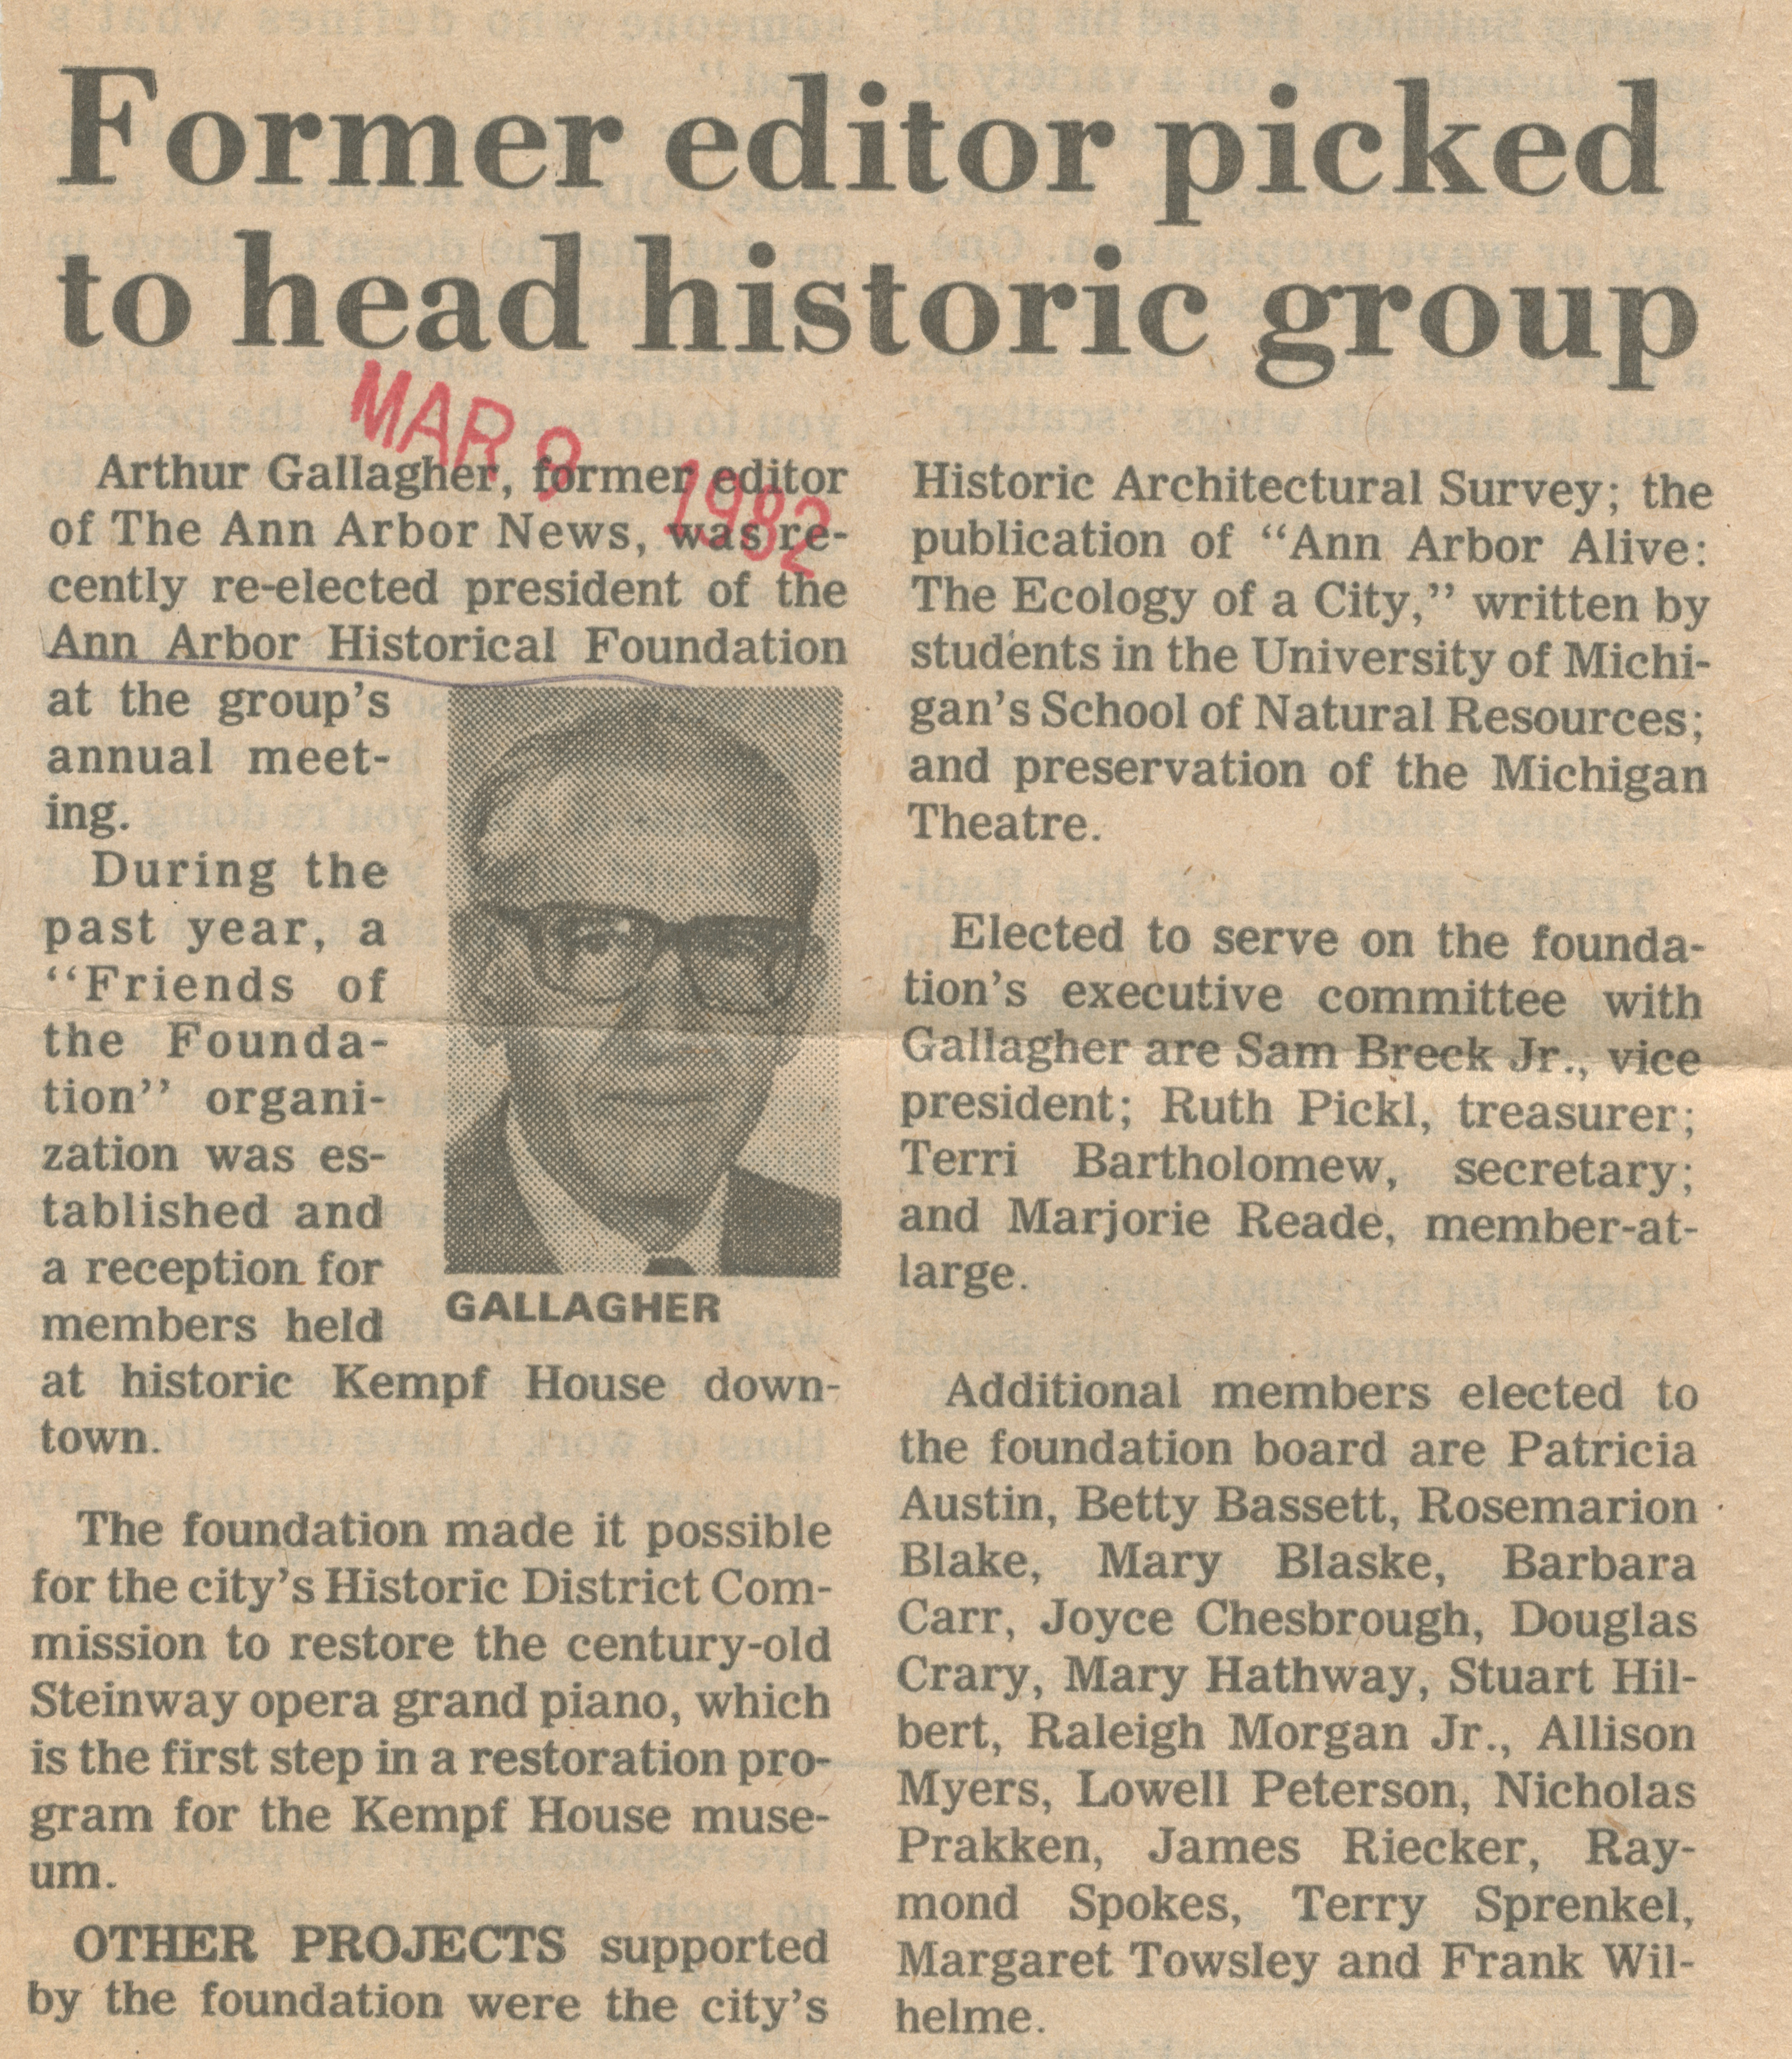 Former editor picked to head historic group image